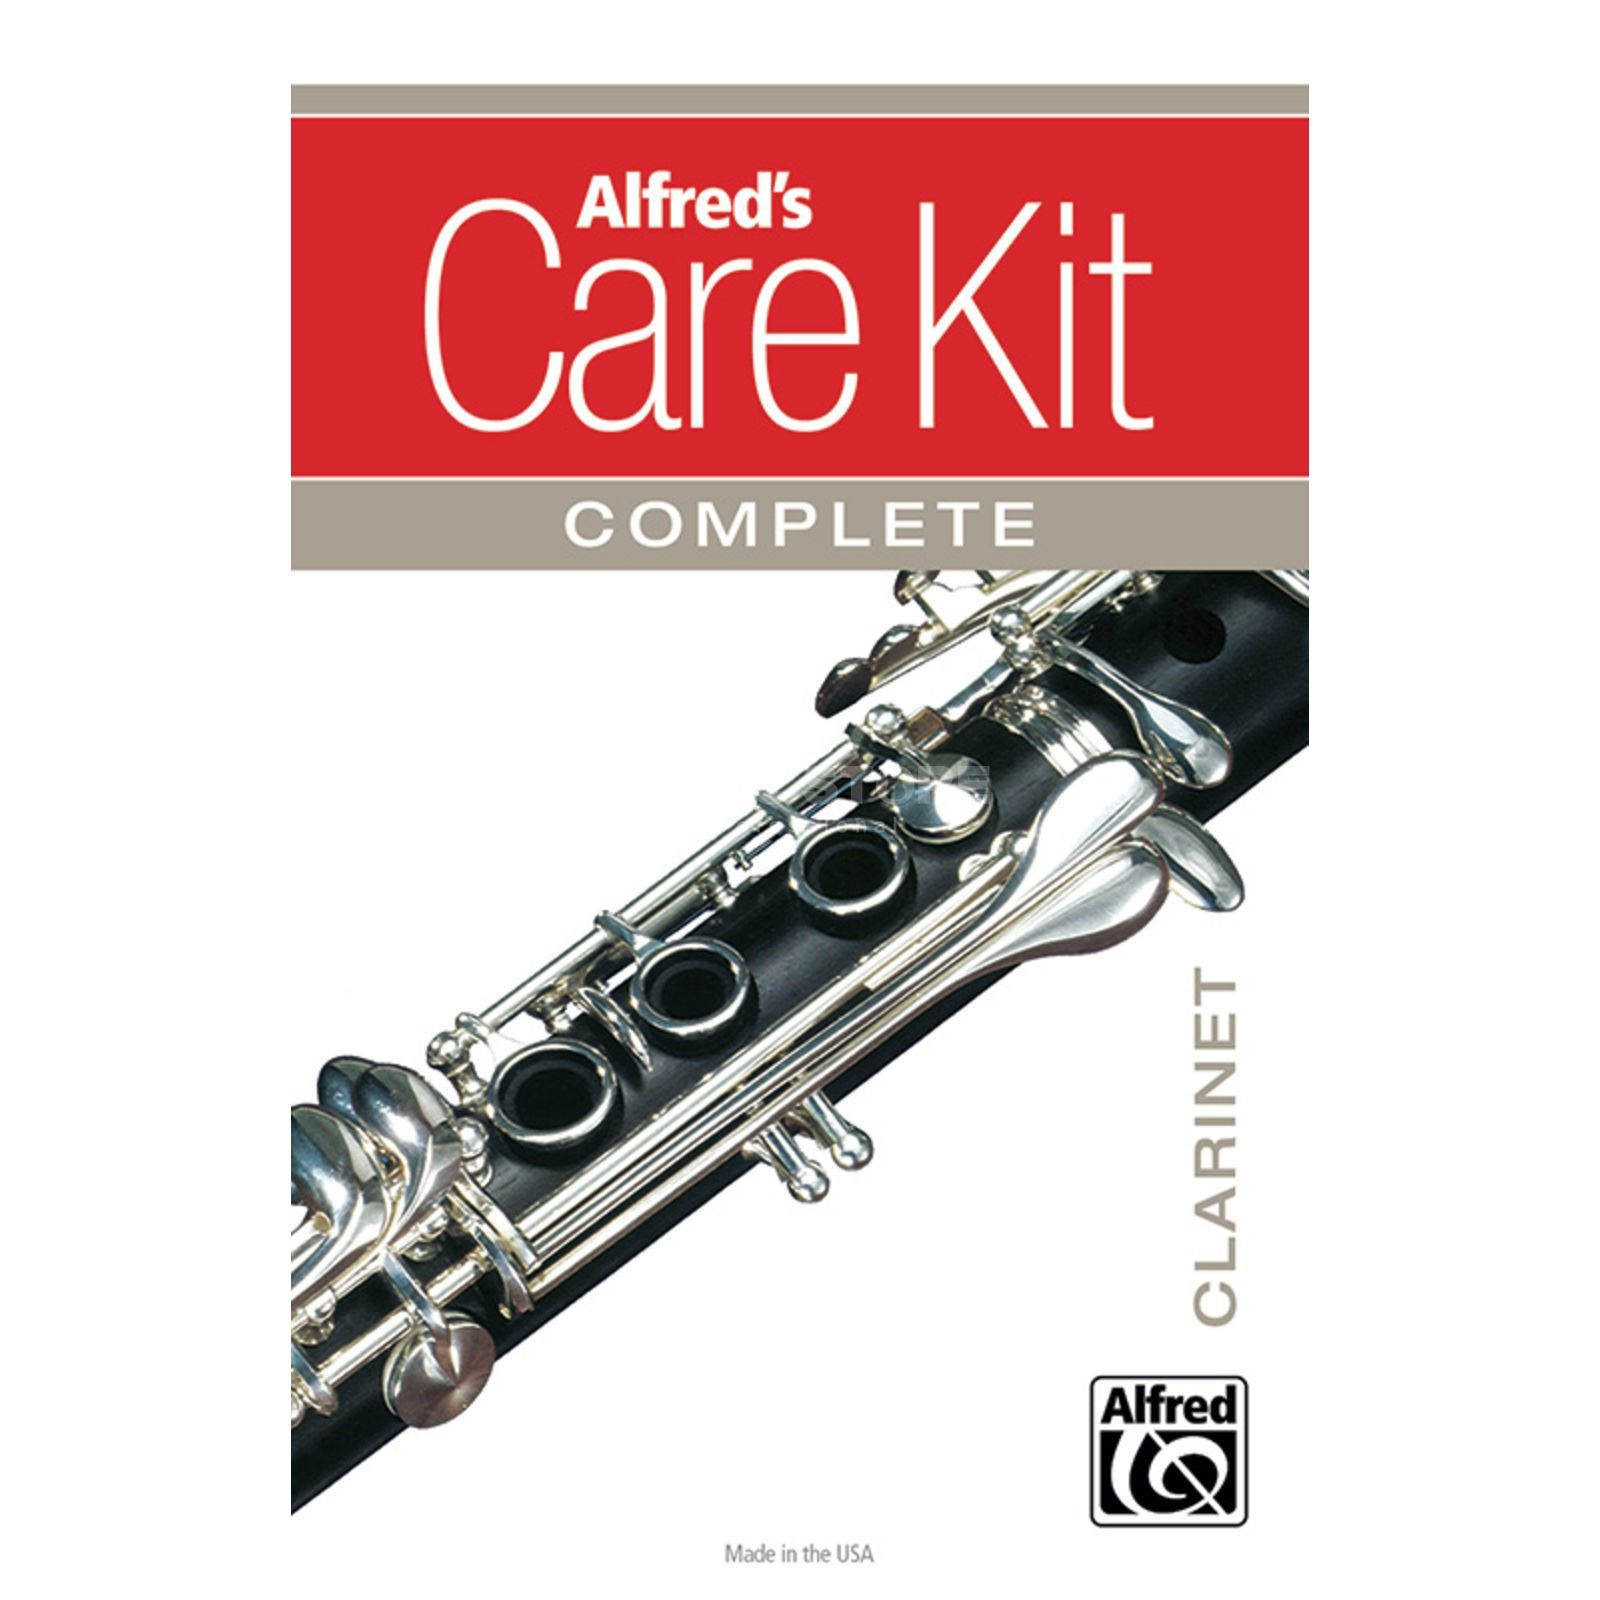 Alfred Music Care Kit Complete: Clarinet  Produktbillede